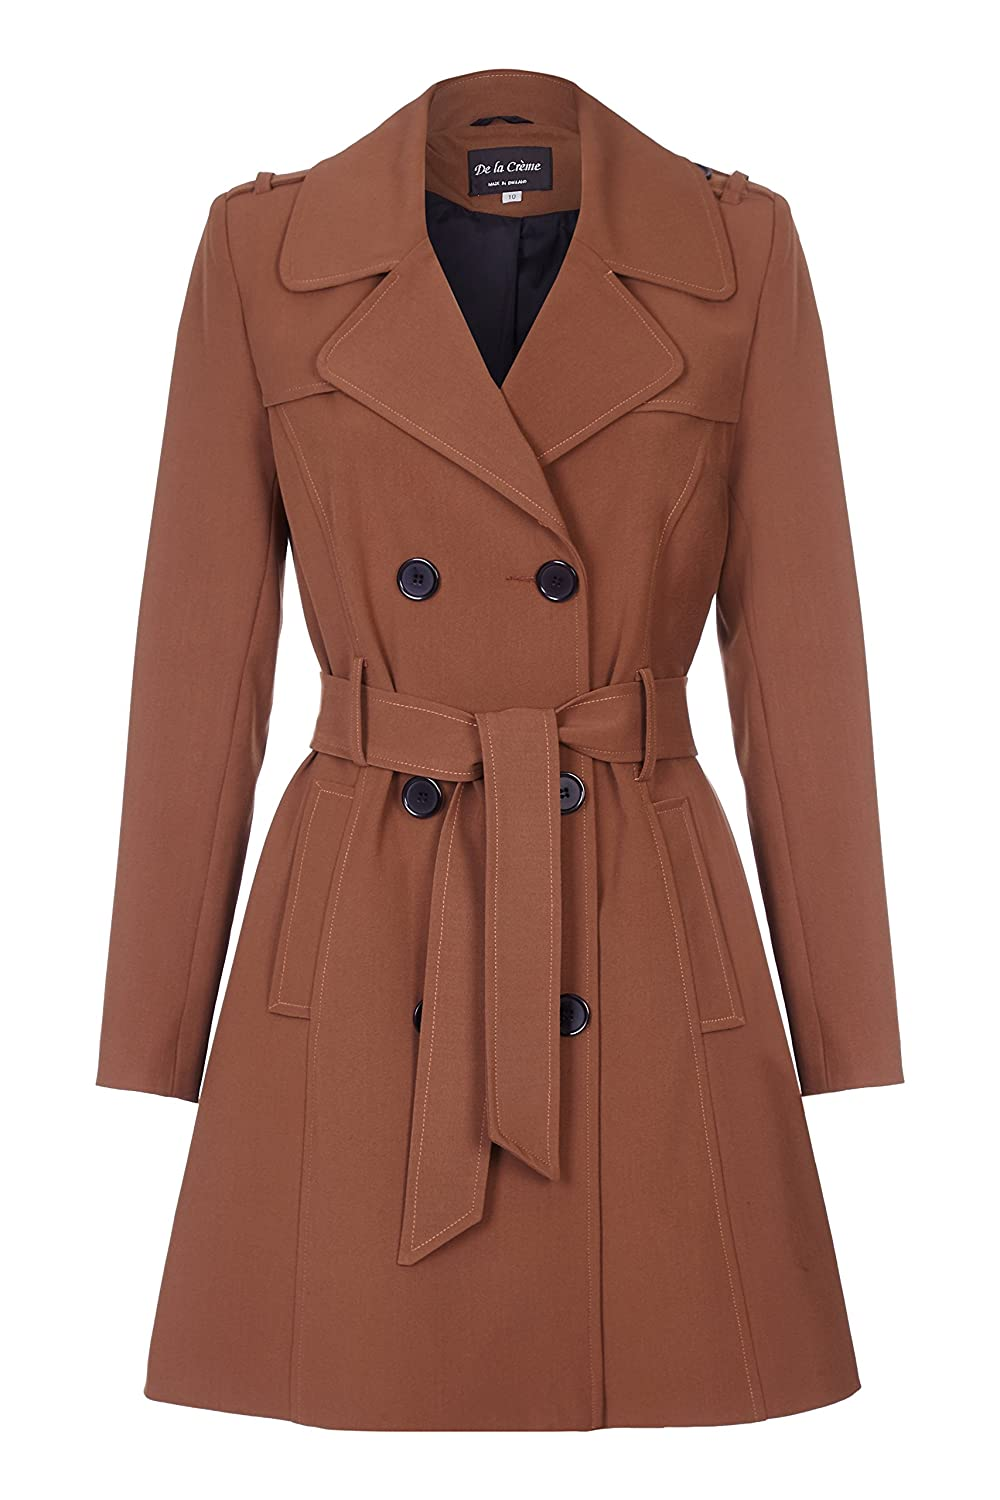 Brown De La Creme  Womens Spring Tie Belted Trench Coat